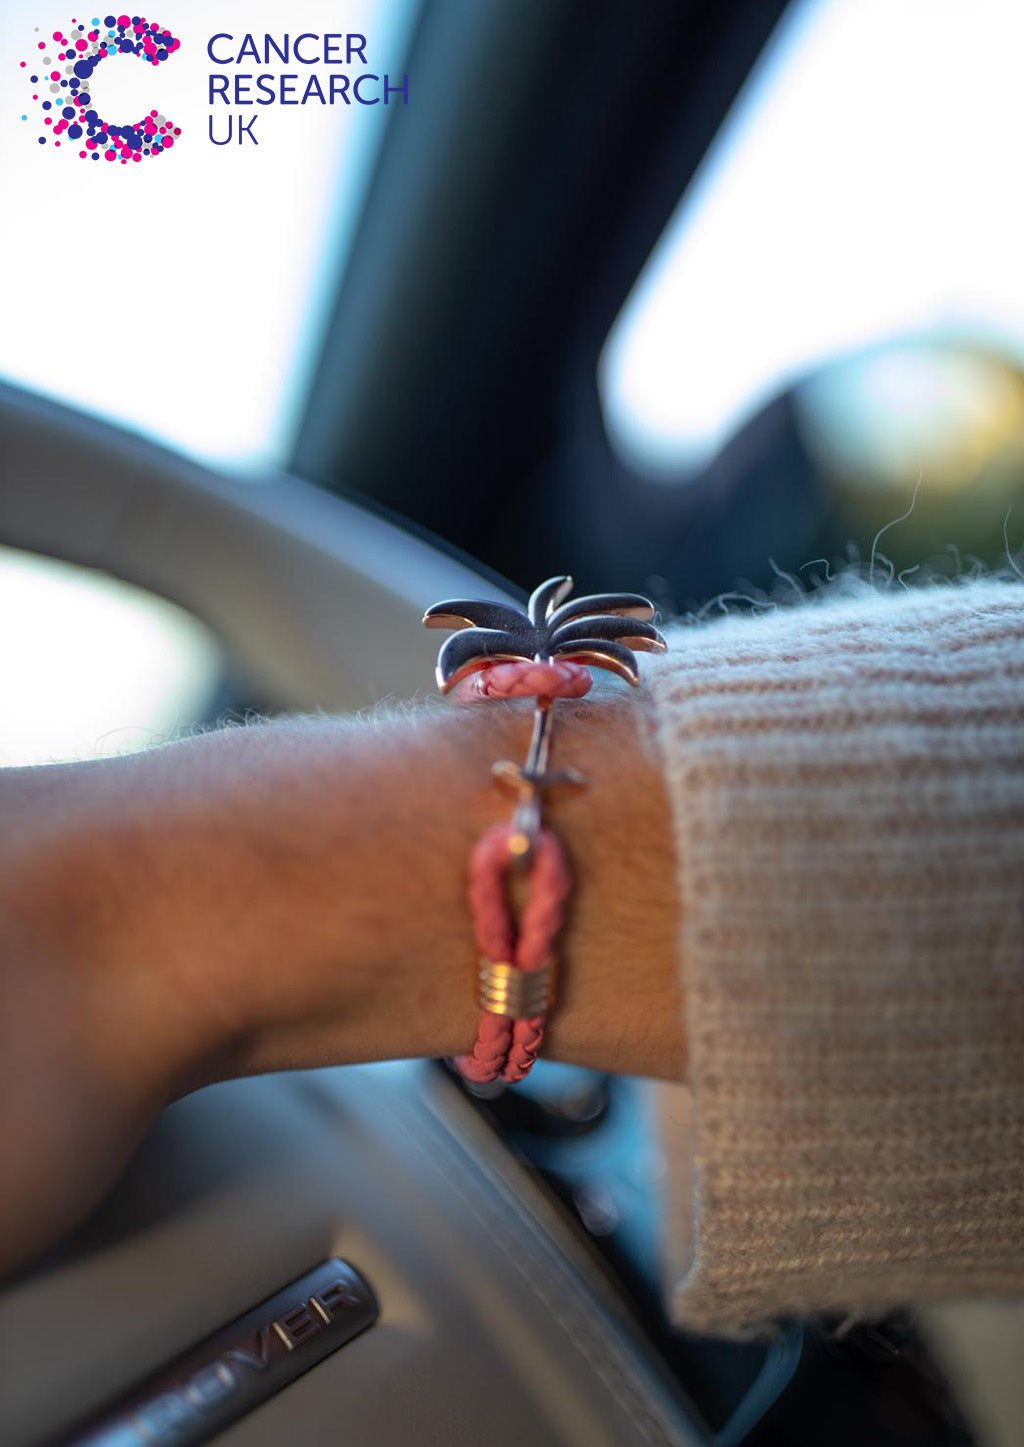 Flamingo Rose - Palm anchor bracelet with pink leather. Lifestyle photo in car.